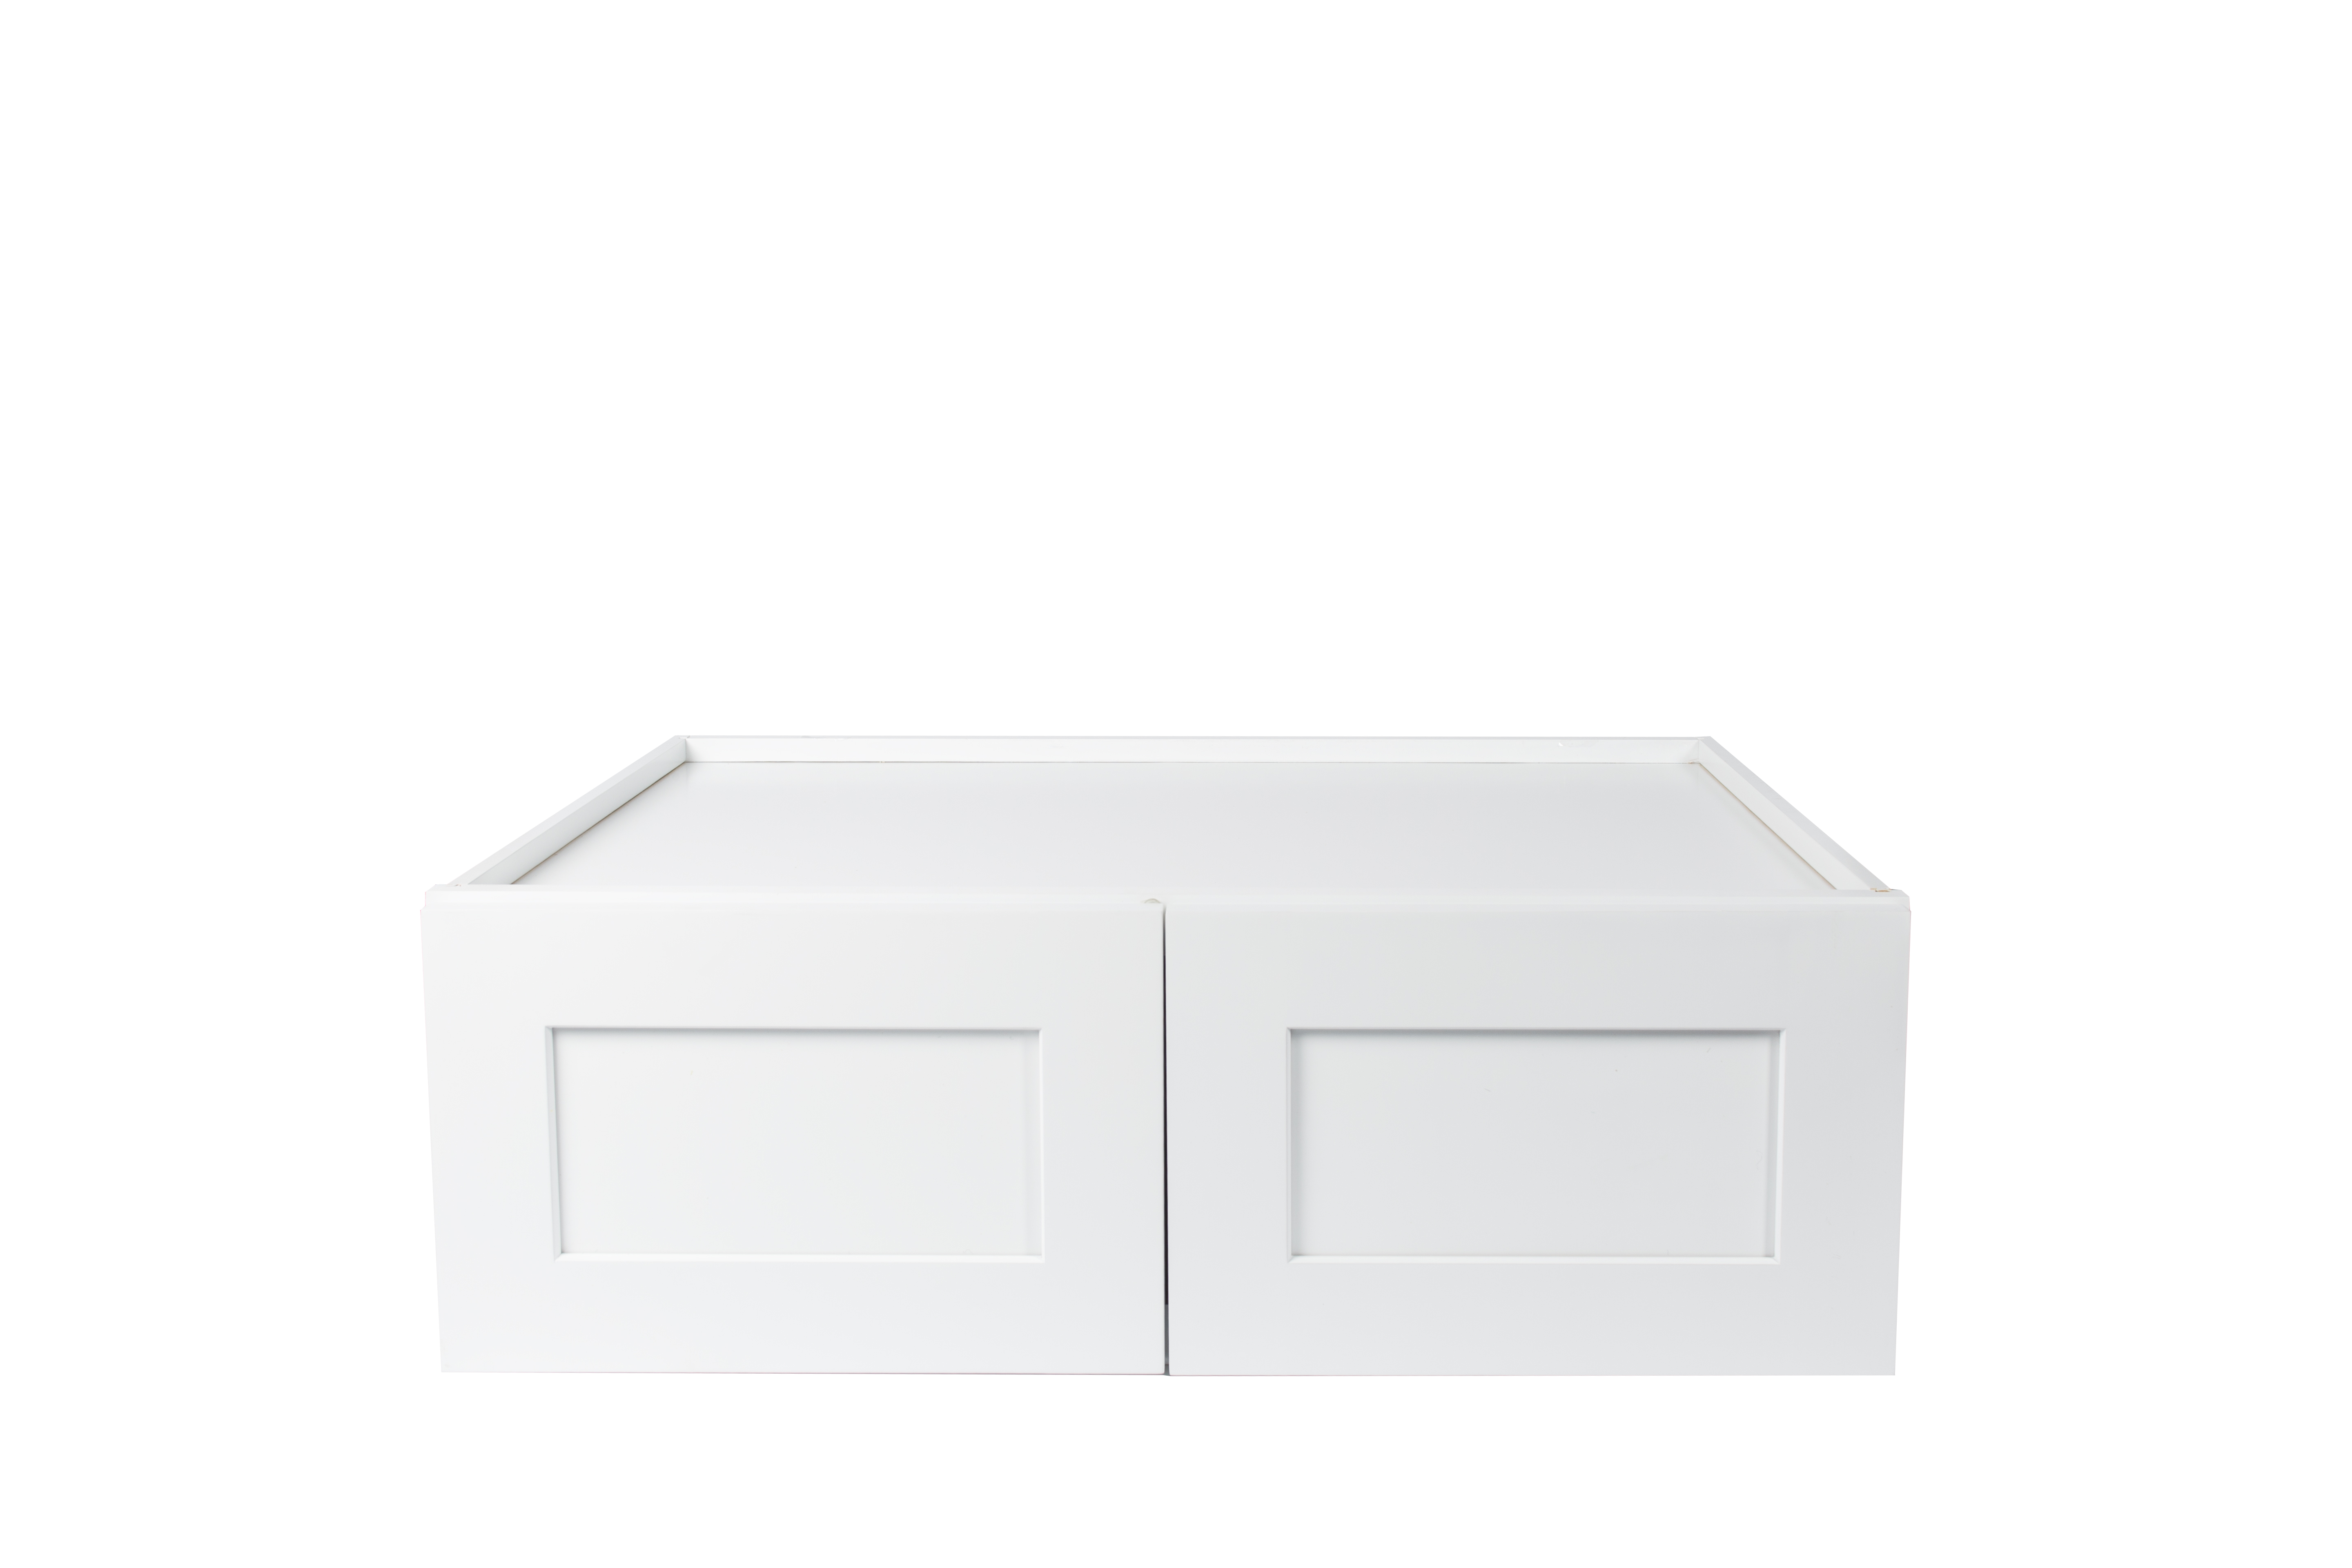 Ready to Assemble 36x21x24 in. Shaker High Double Door Wall Cabinet in White